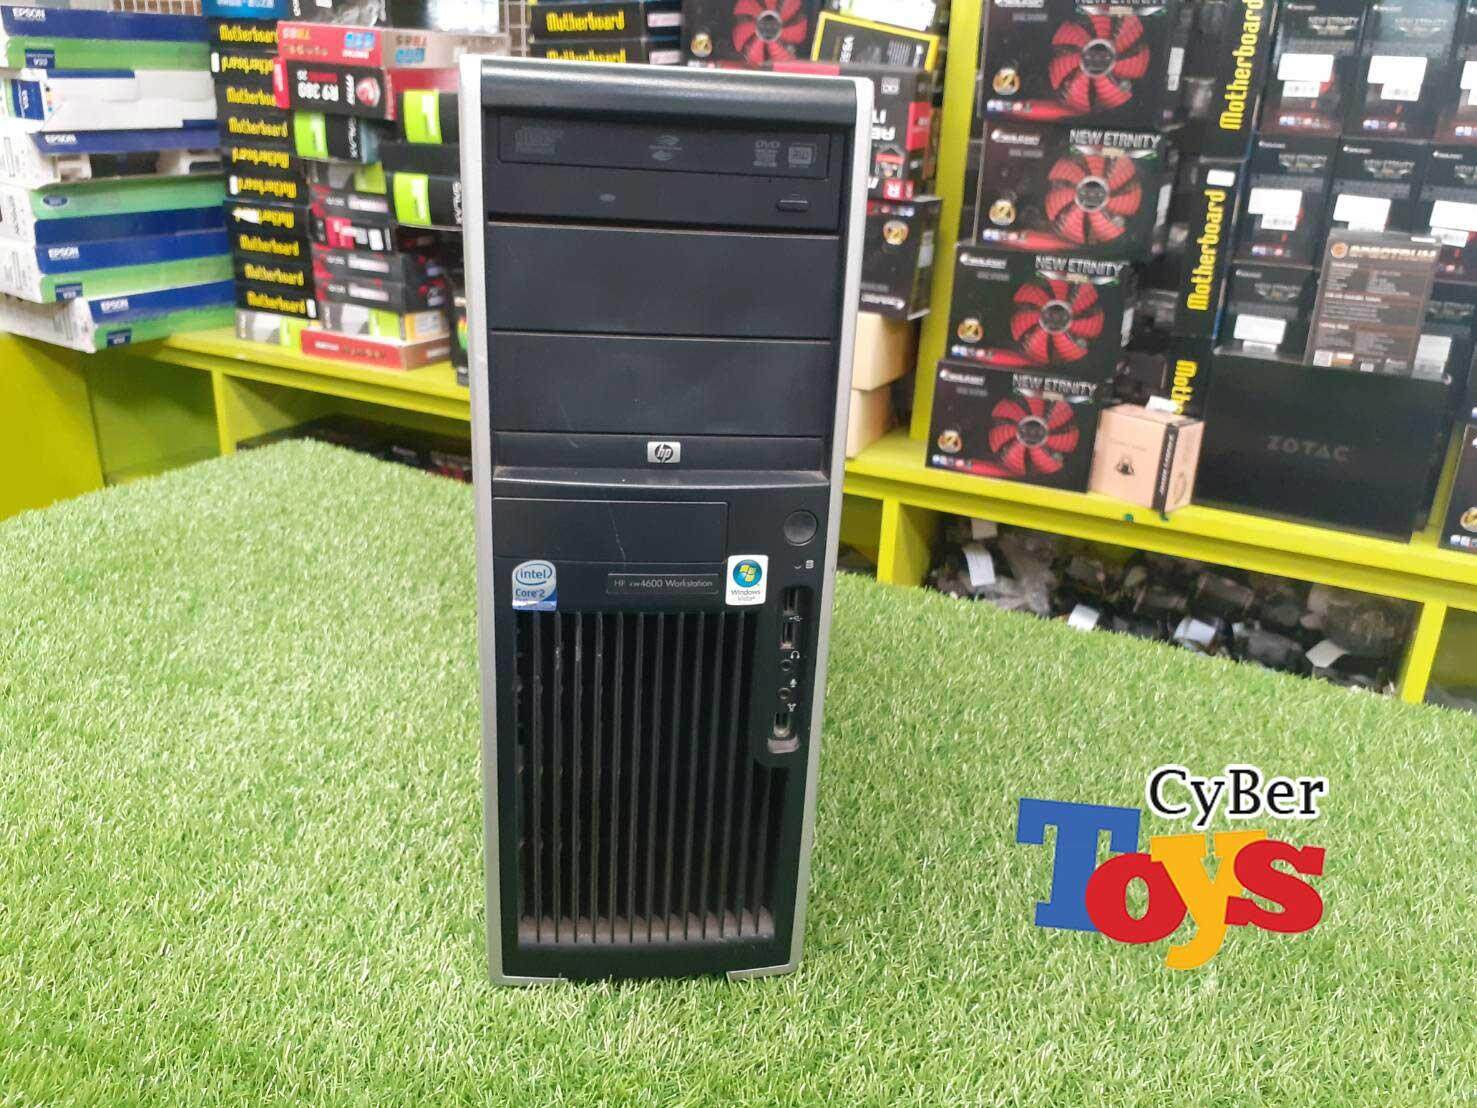 HP A6675L DRIVERS FOR WINDOWS XP